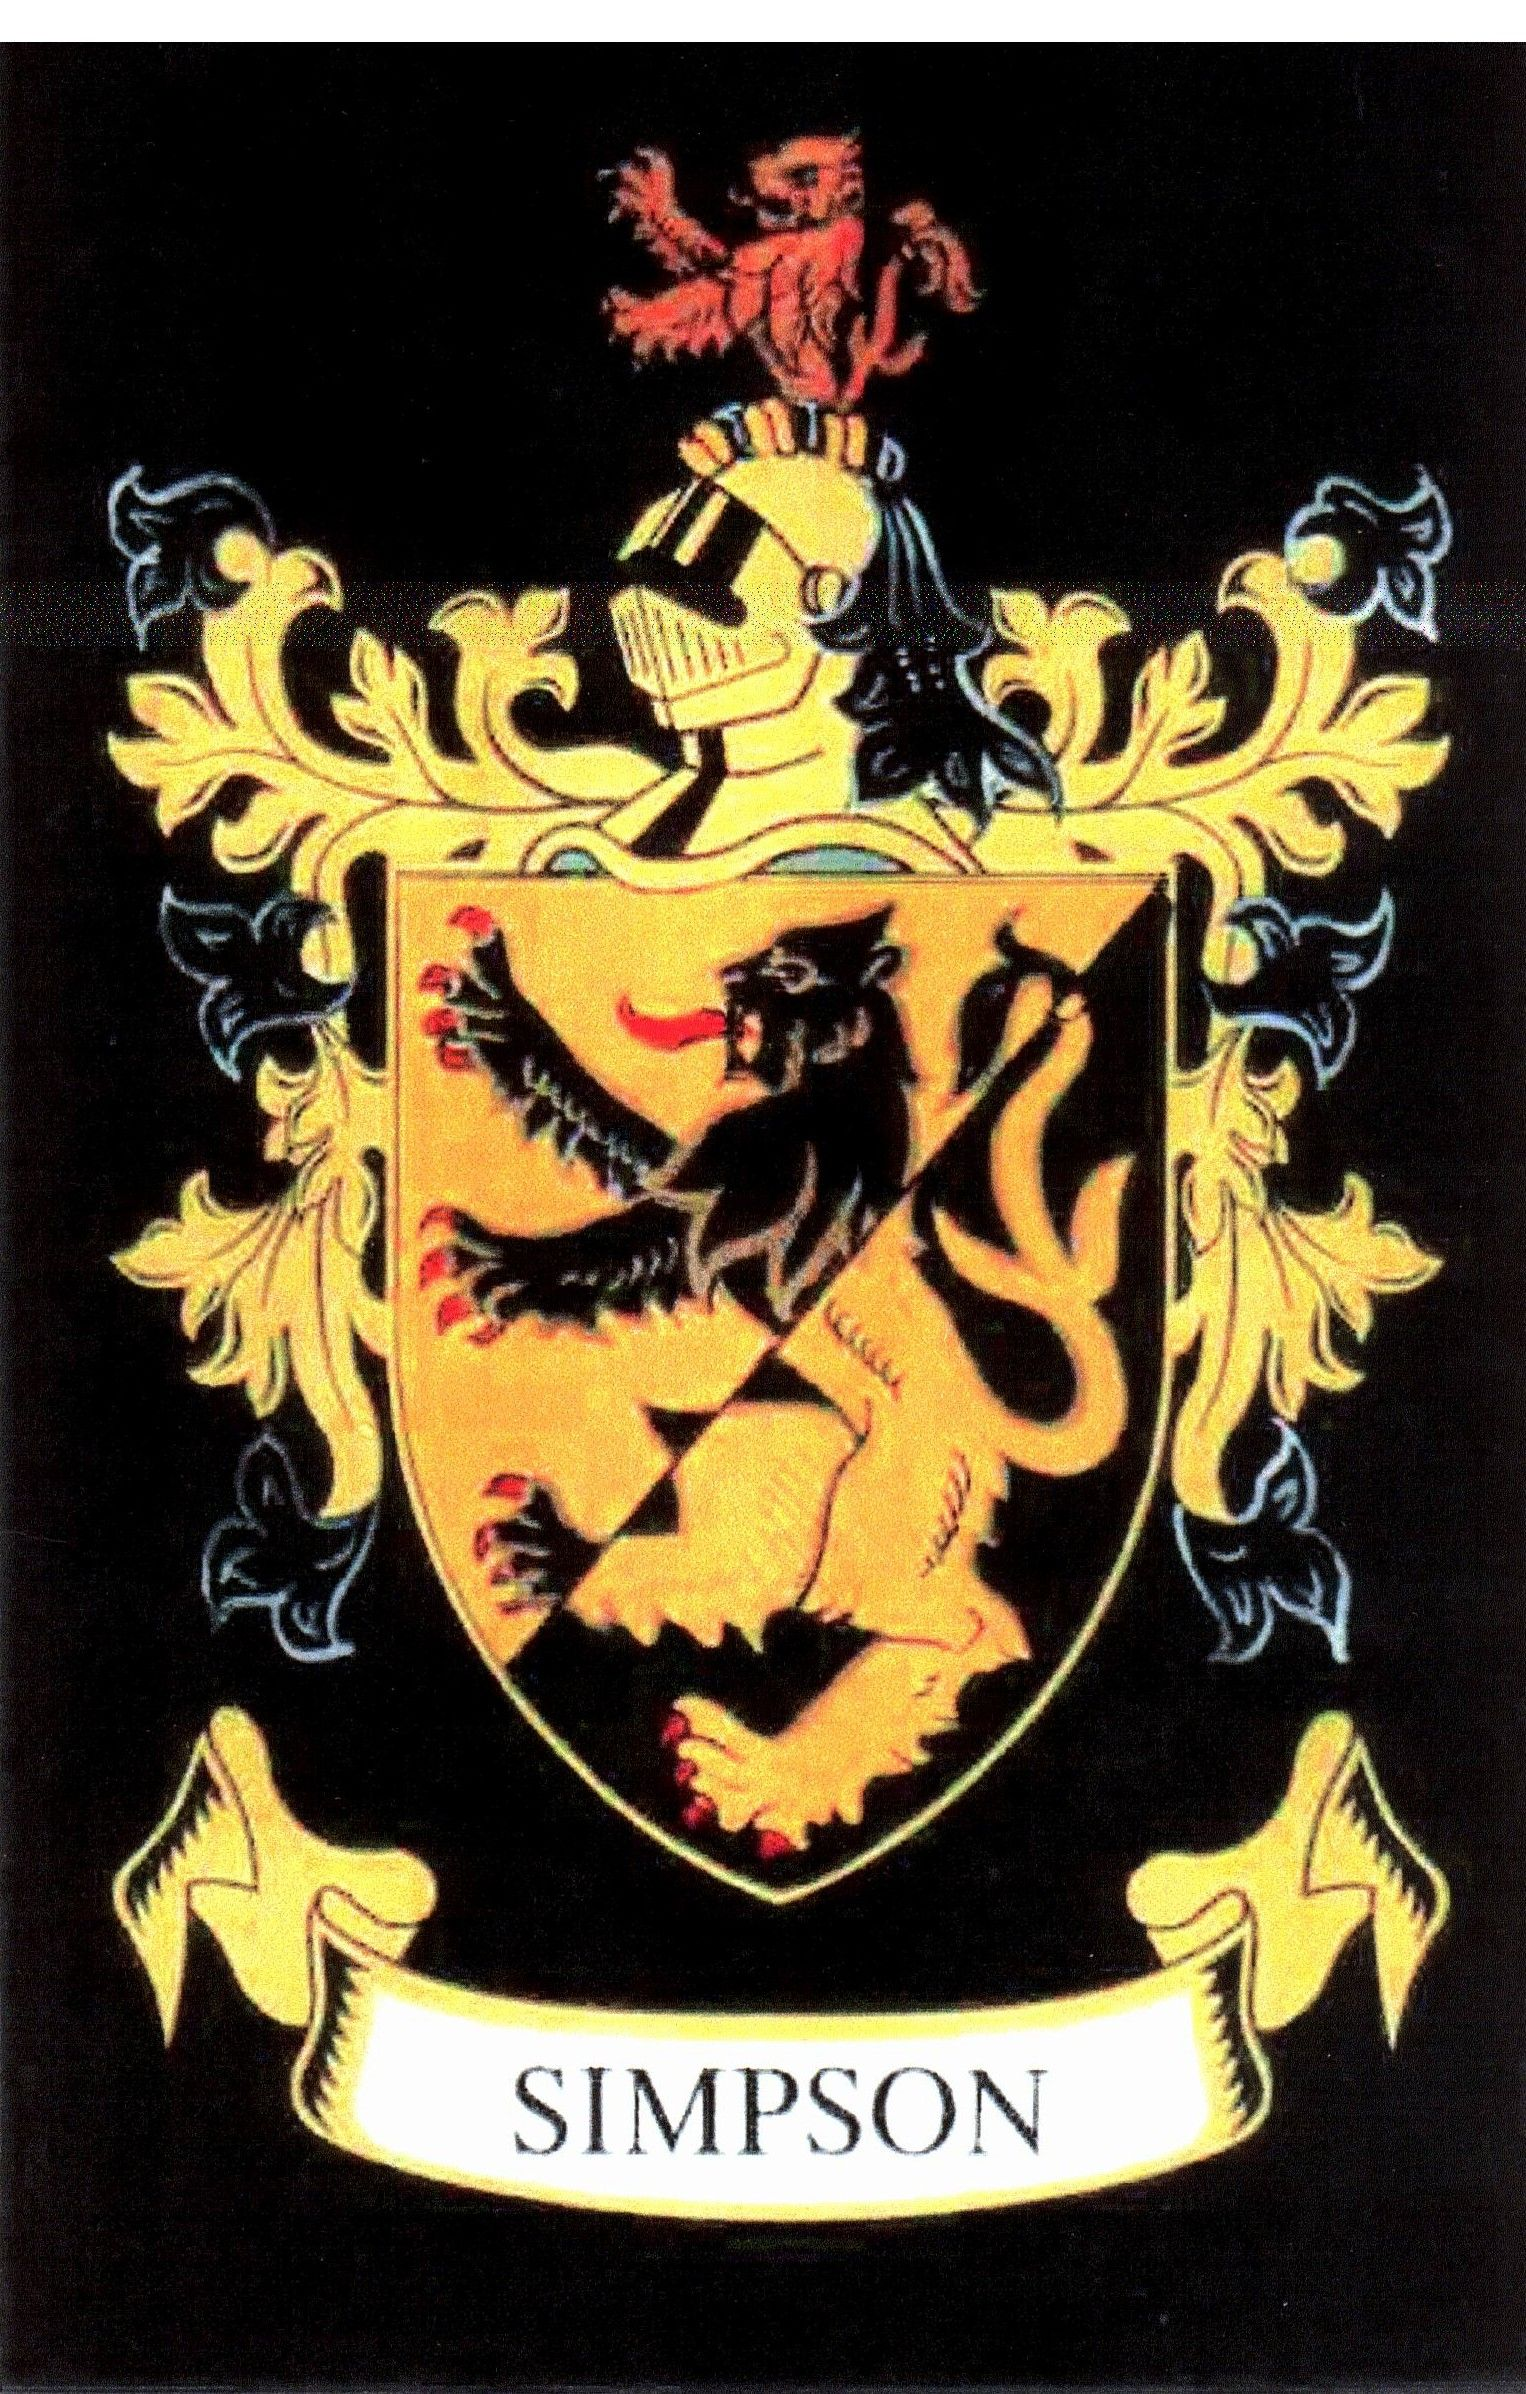 Simpson crest simpson family crest my family symbols pinterest simpson crest simpson family crest buycottarizona Image collections